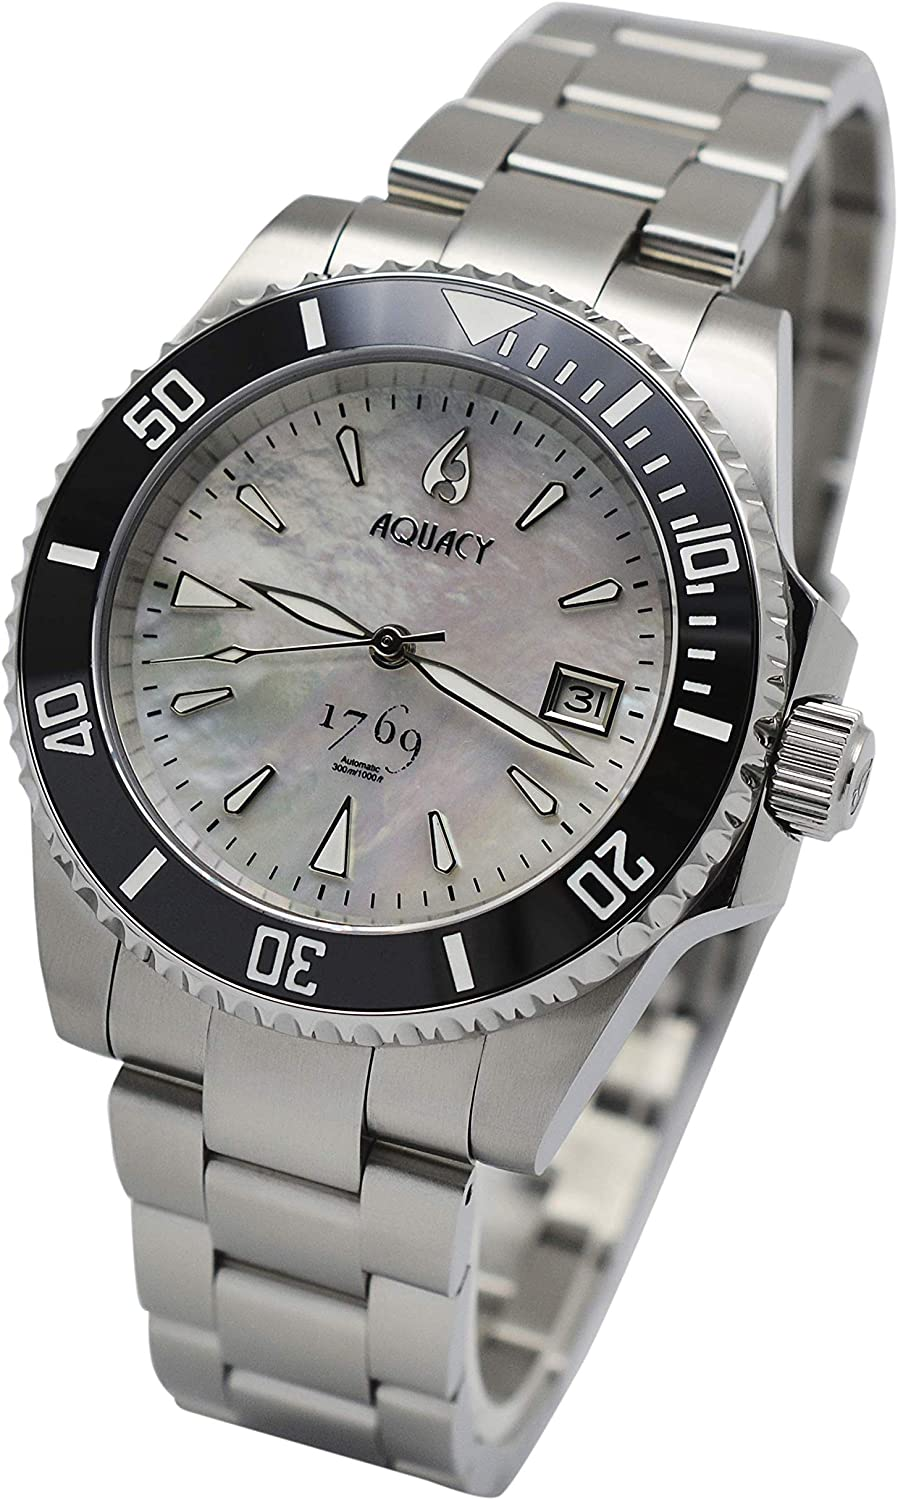 Aquacy 1769 Fees Free shipping on posting reviews free Limited Edition Diver White Watch 300M Waterproof -